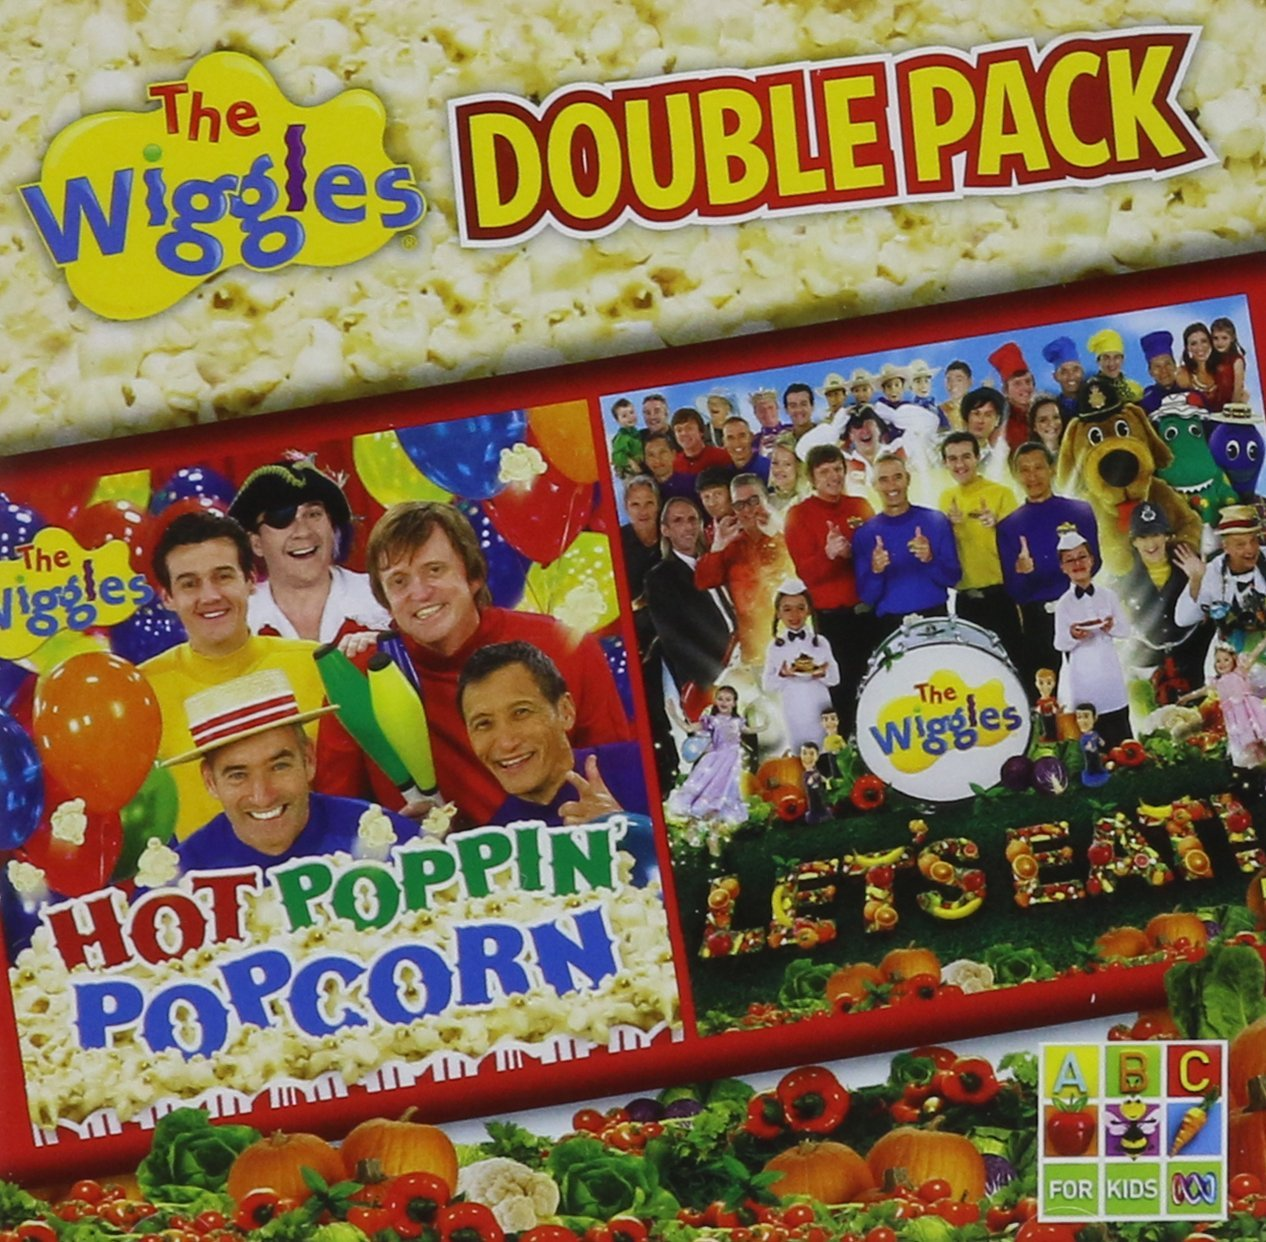 Double Pack: Hot Poppin' Popcorn + Let's Eat!